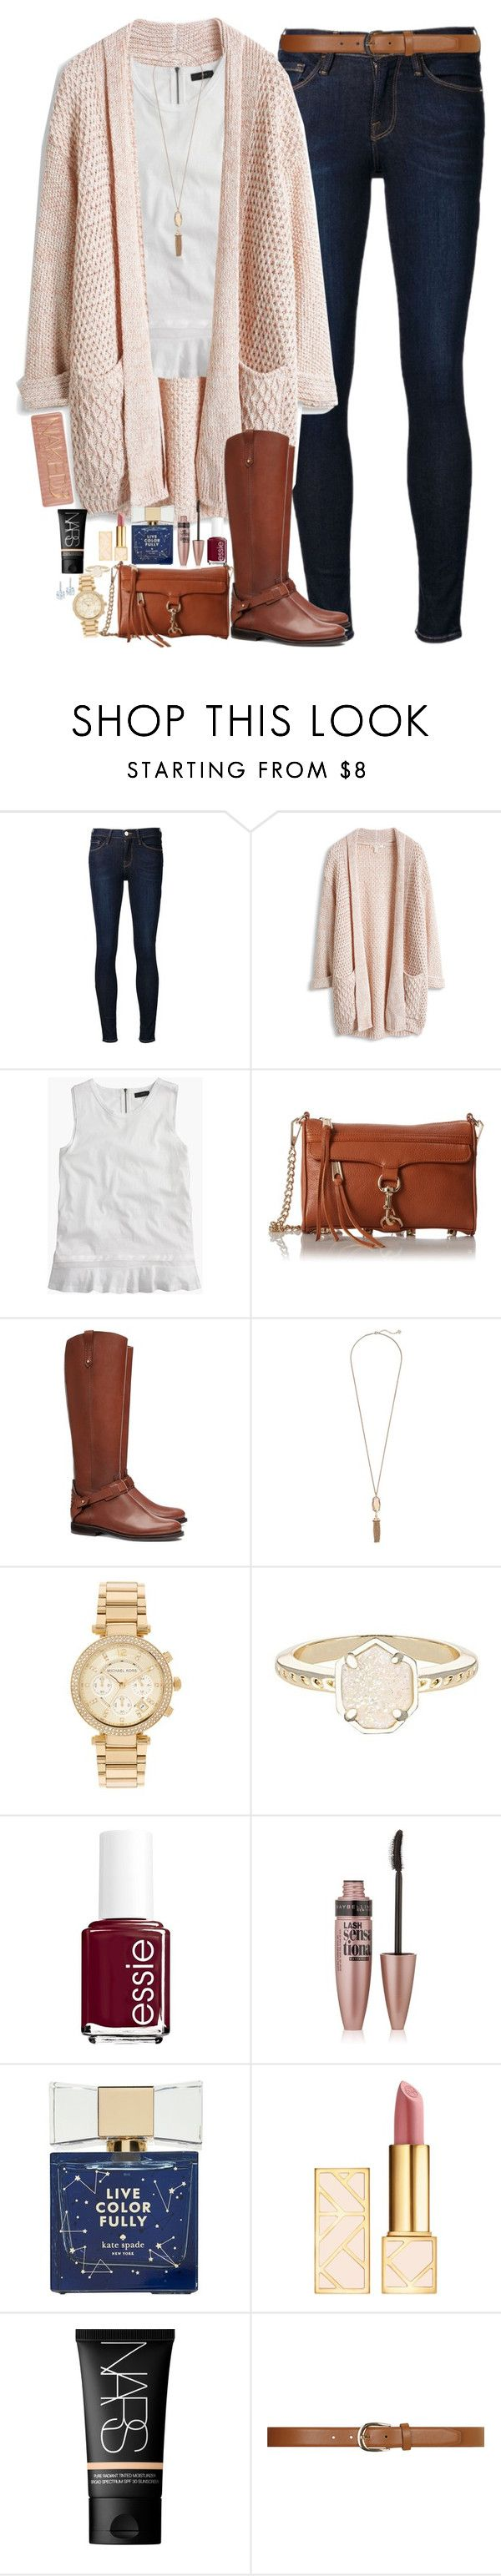 """""""Comment To Be On My Tag List!"""" by teamboby ❤ liked on Polyvore featuring moda, Frame Denim, J.Crew, Rebecca Minkoff, Tory Burch, Kendra Scott, Michael Kors, Essie, Maybelline y Kate Spade"""